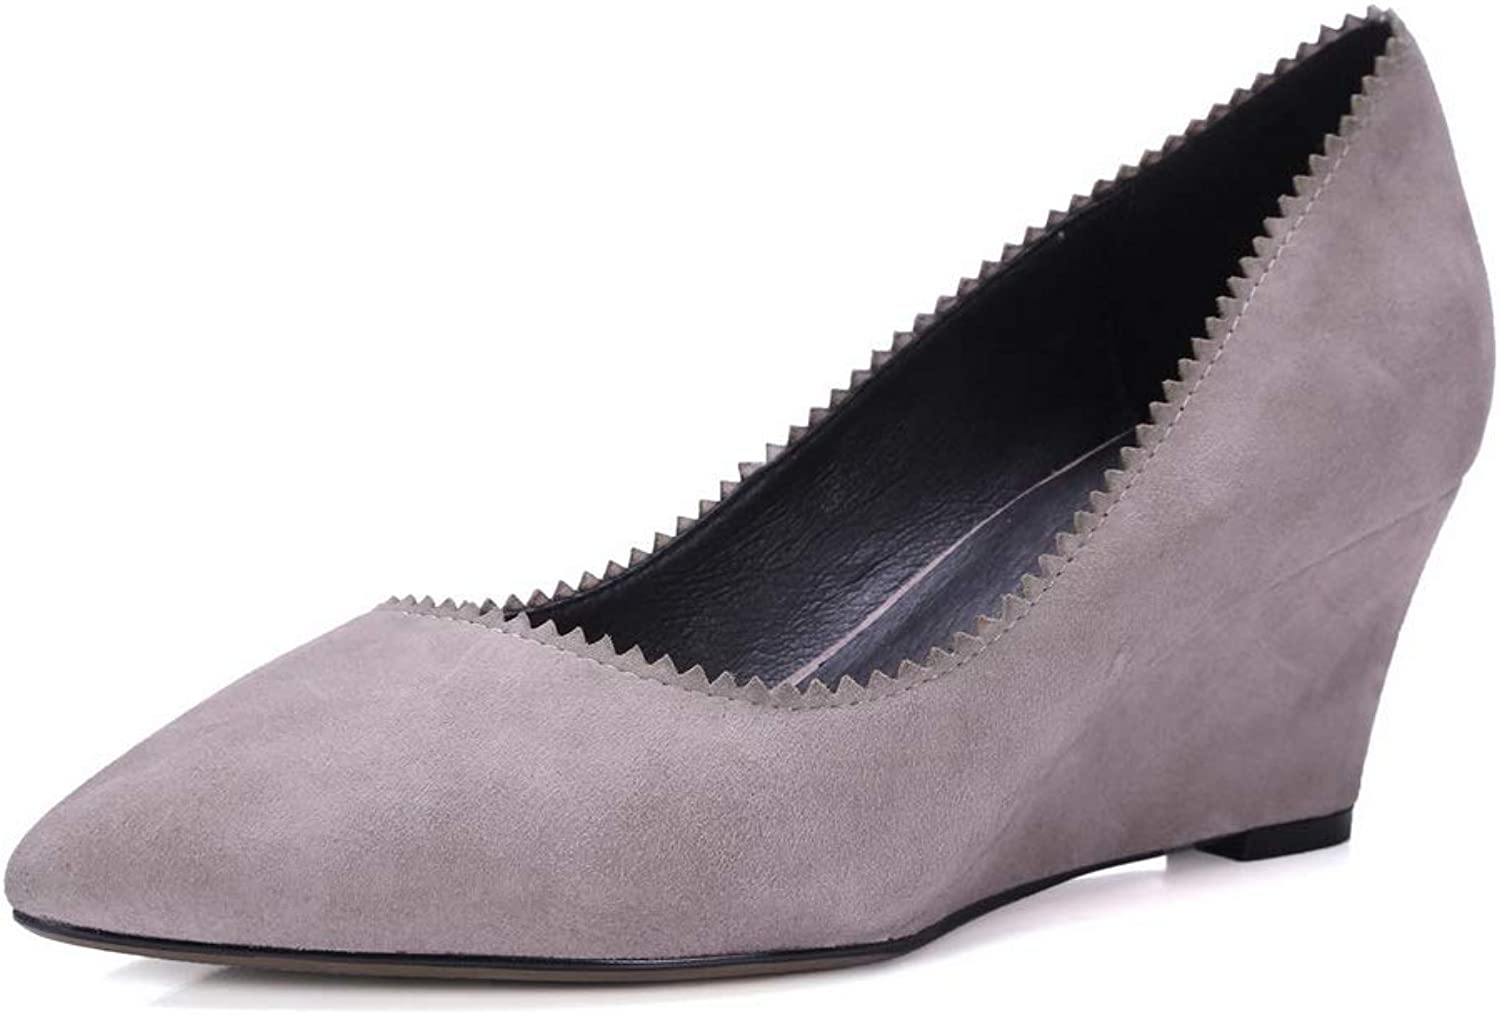 AN Womens Wedges Pointed-Toe Imitated Suede Pumps shoes DGU00932